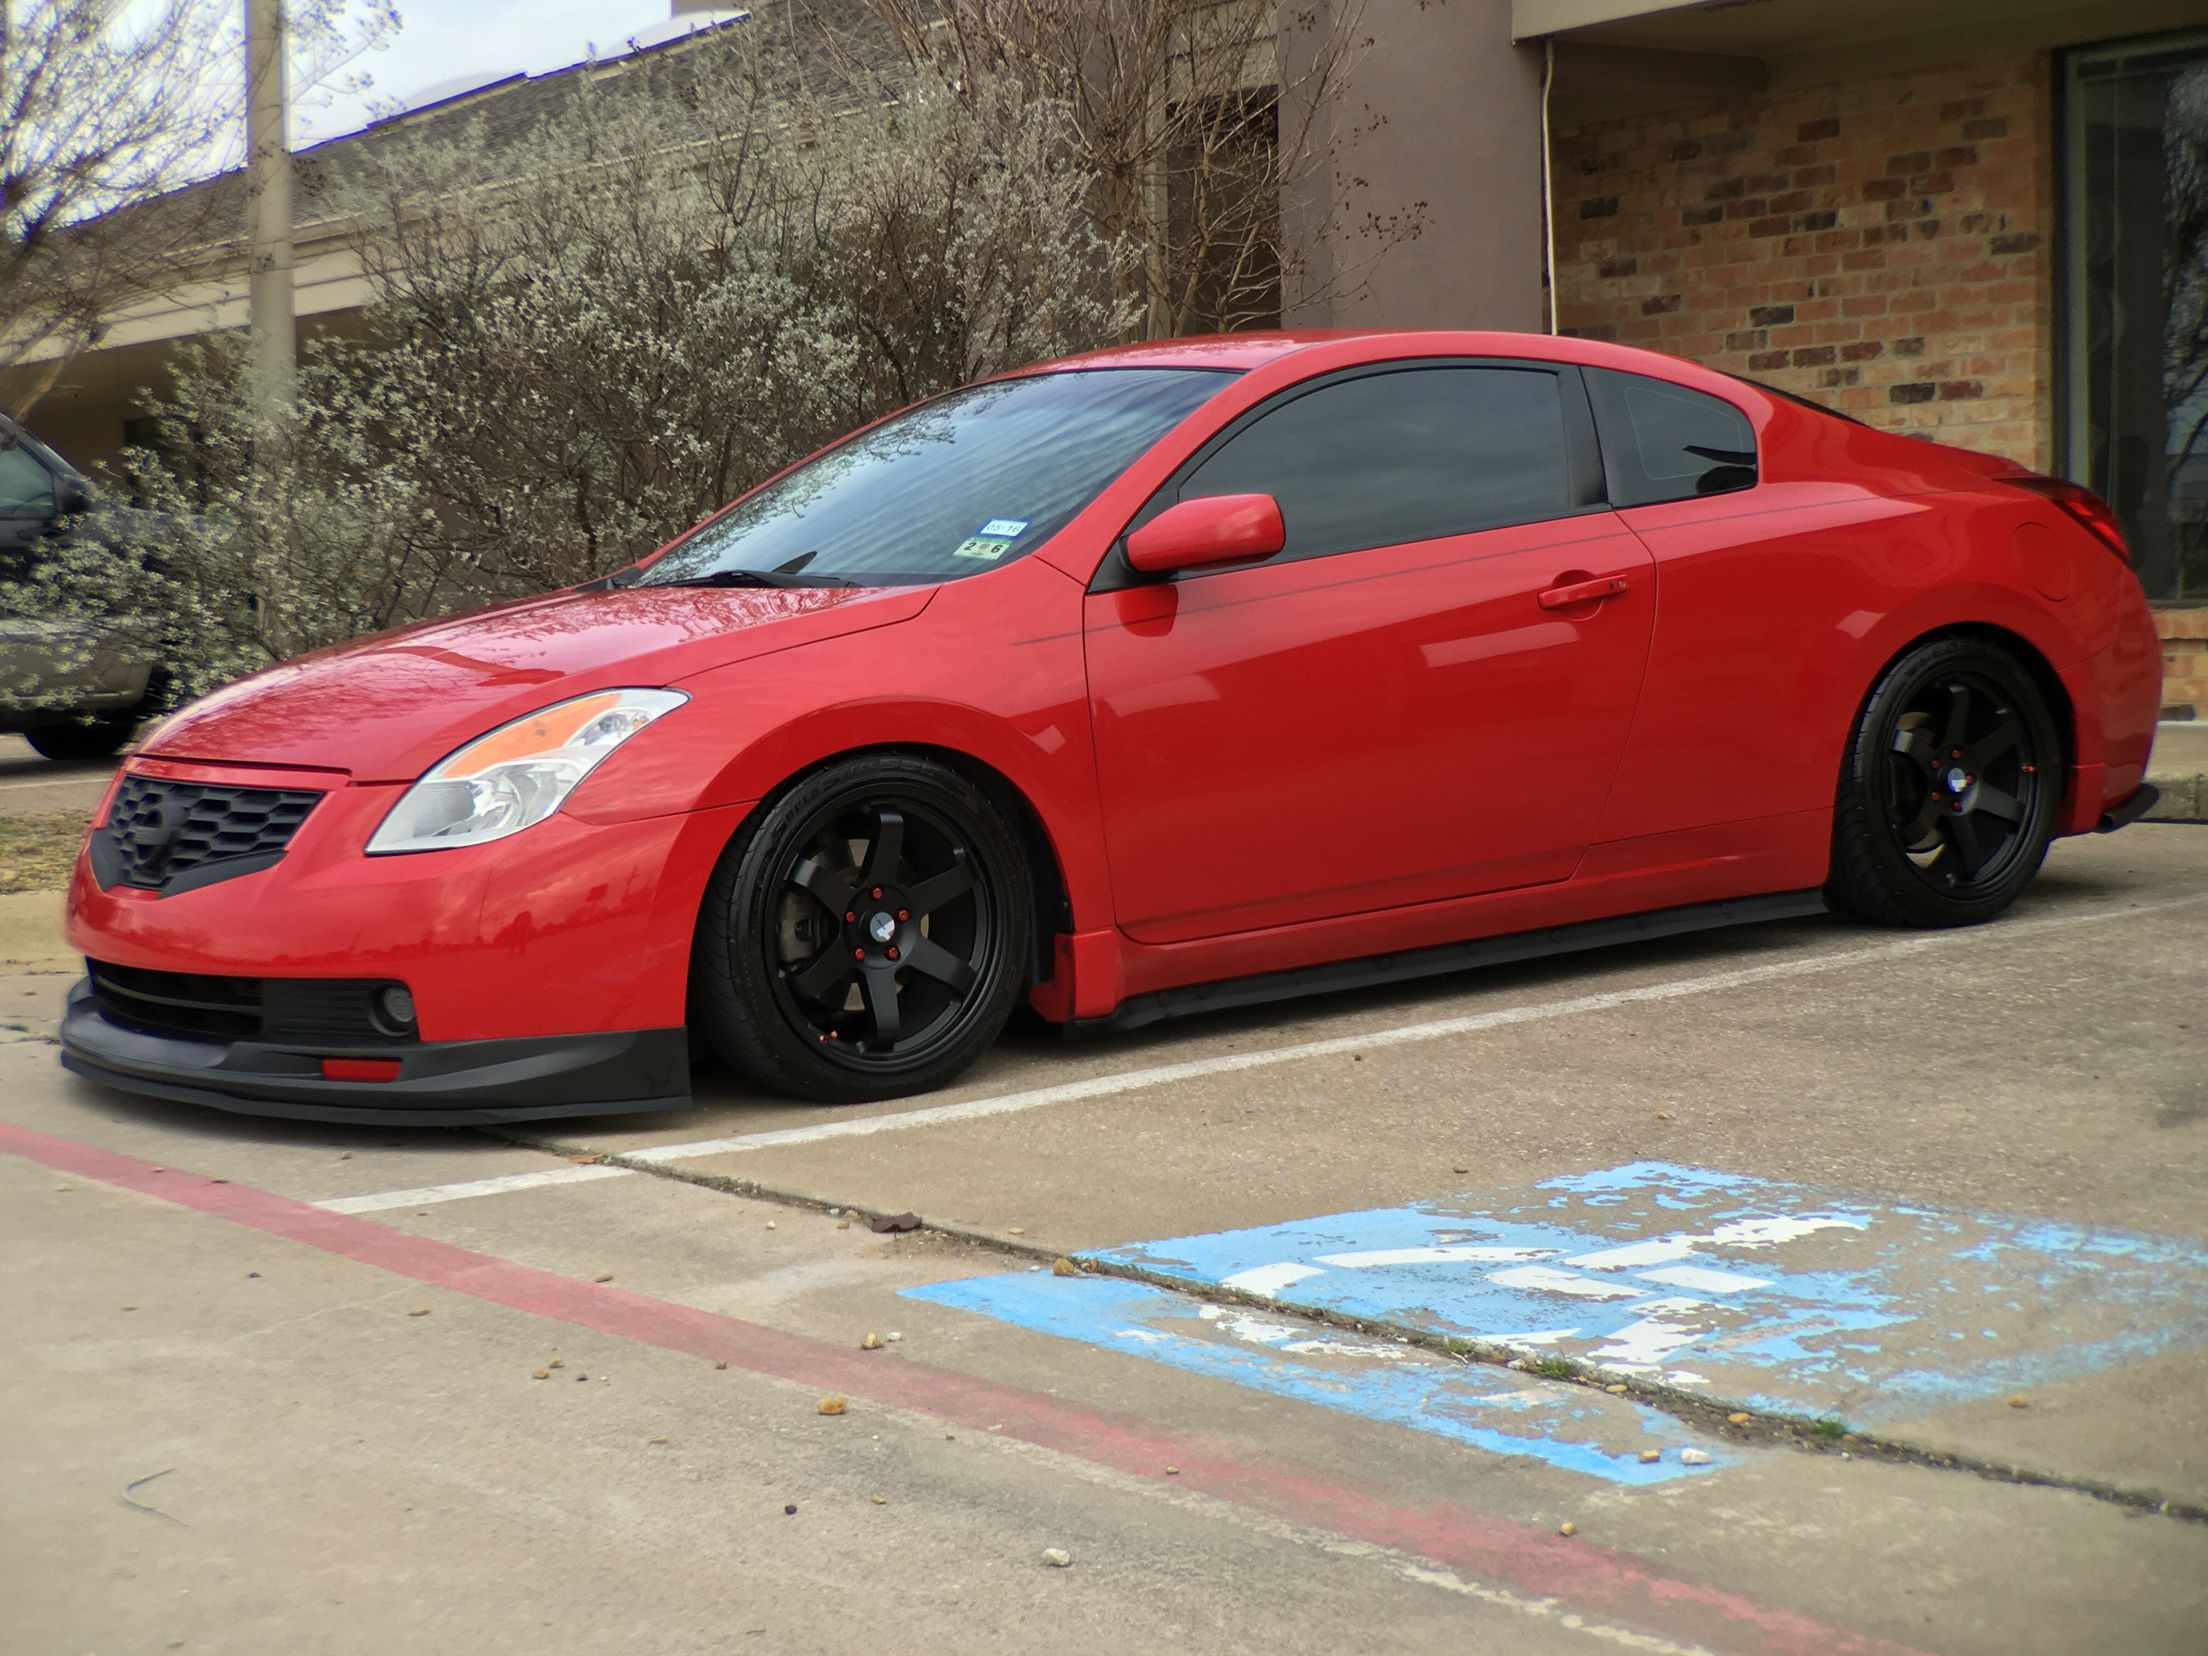 Altima coupe the 3 5L V6 manual version of this is actually a